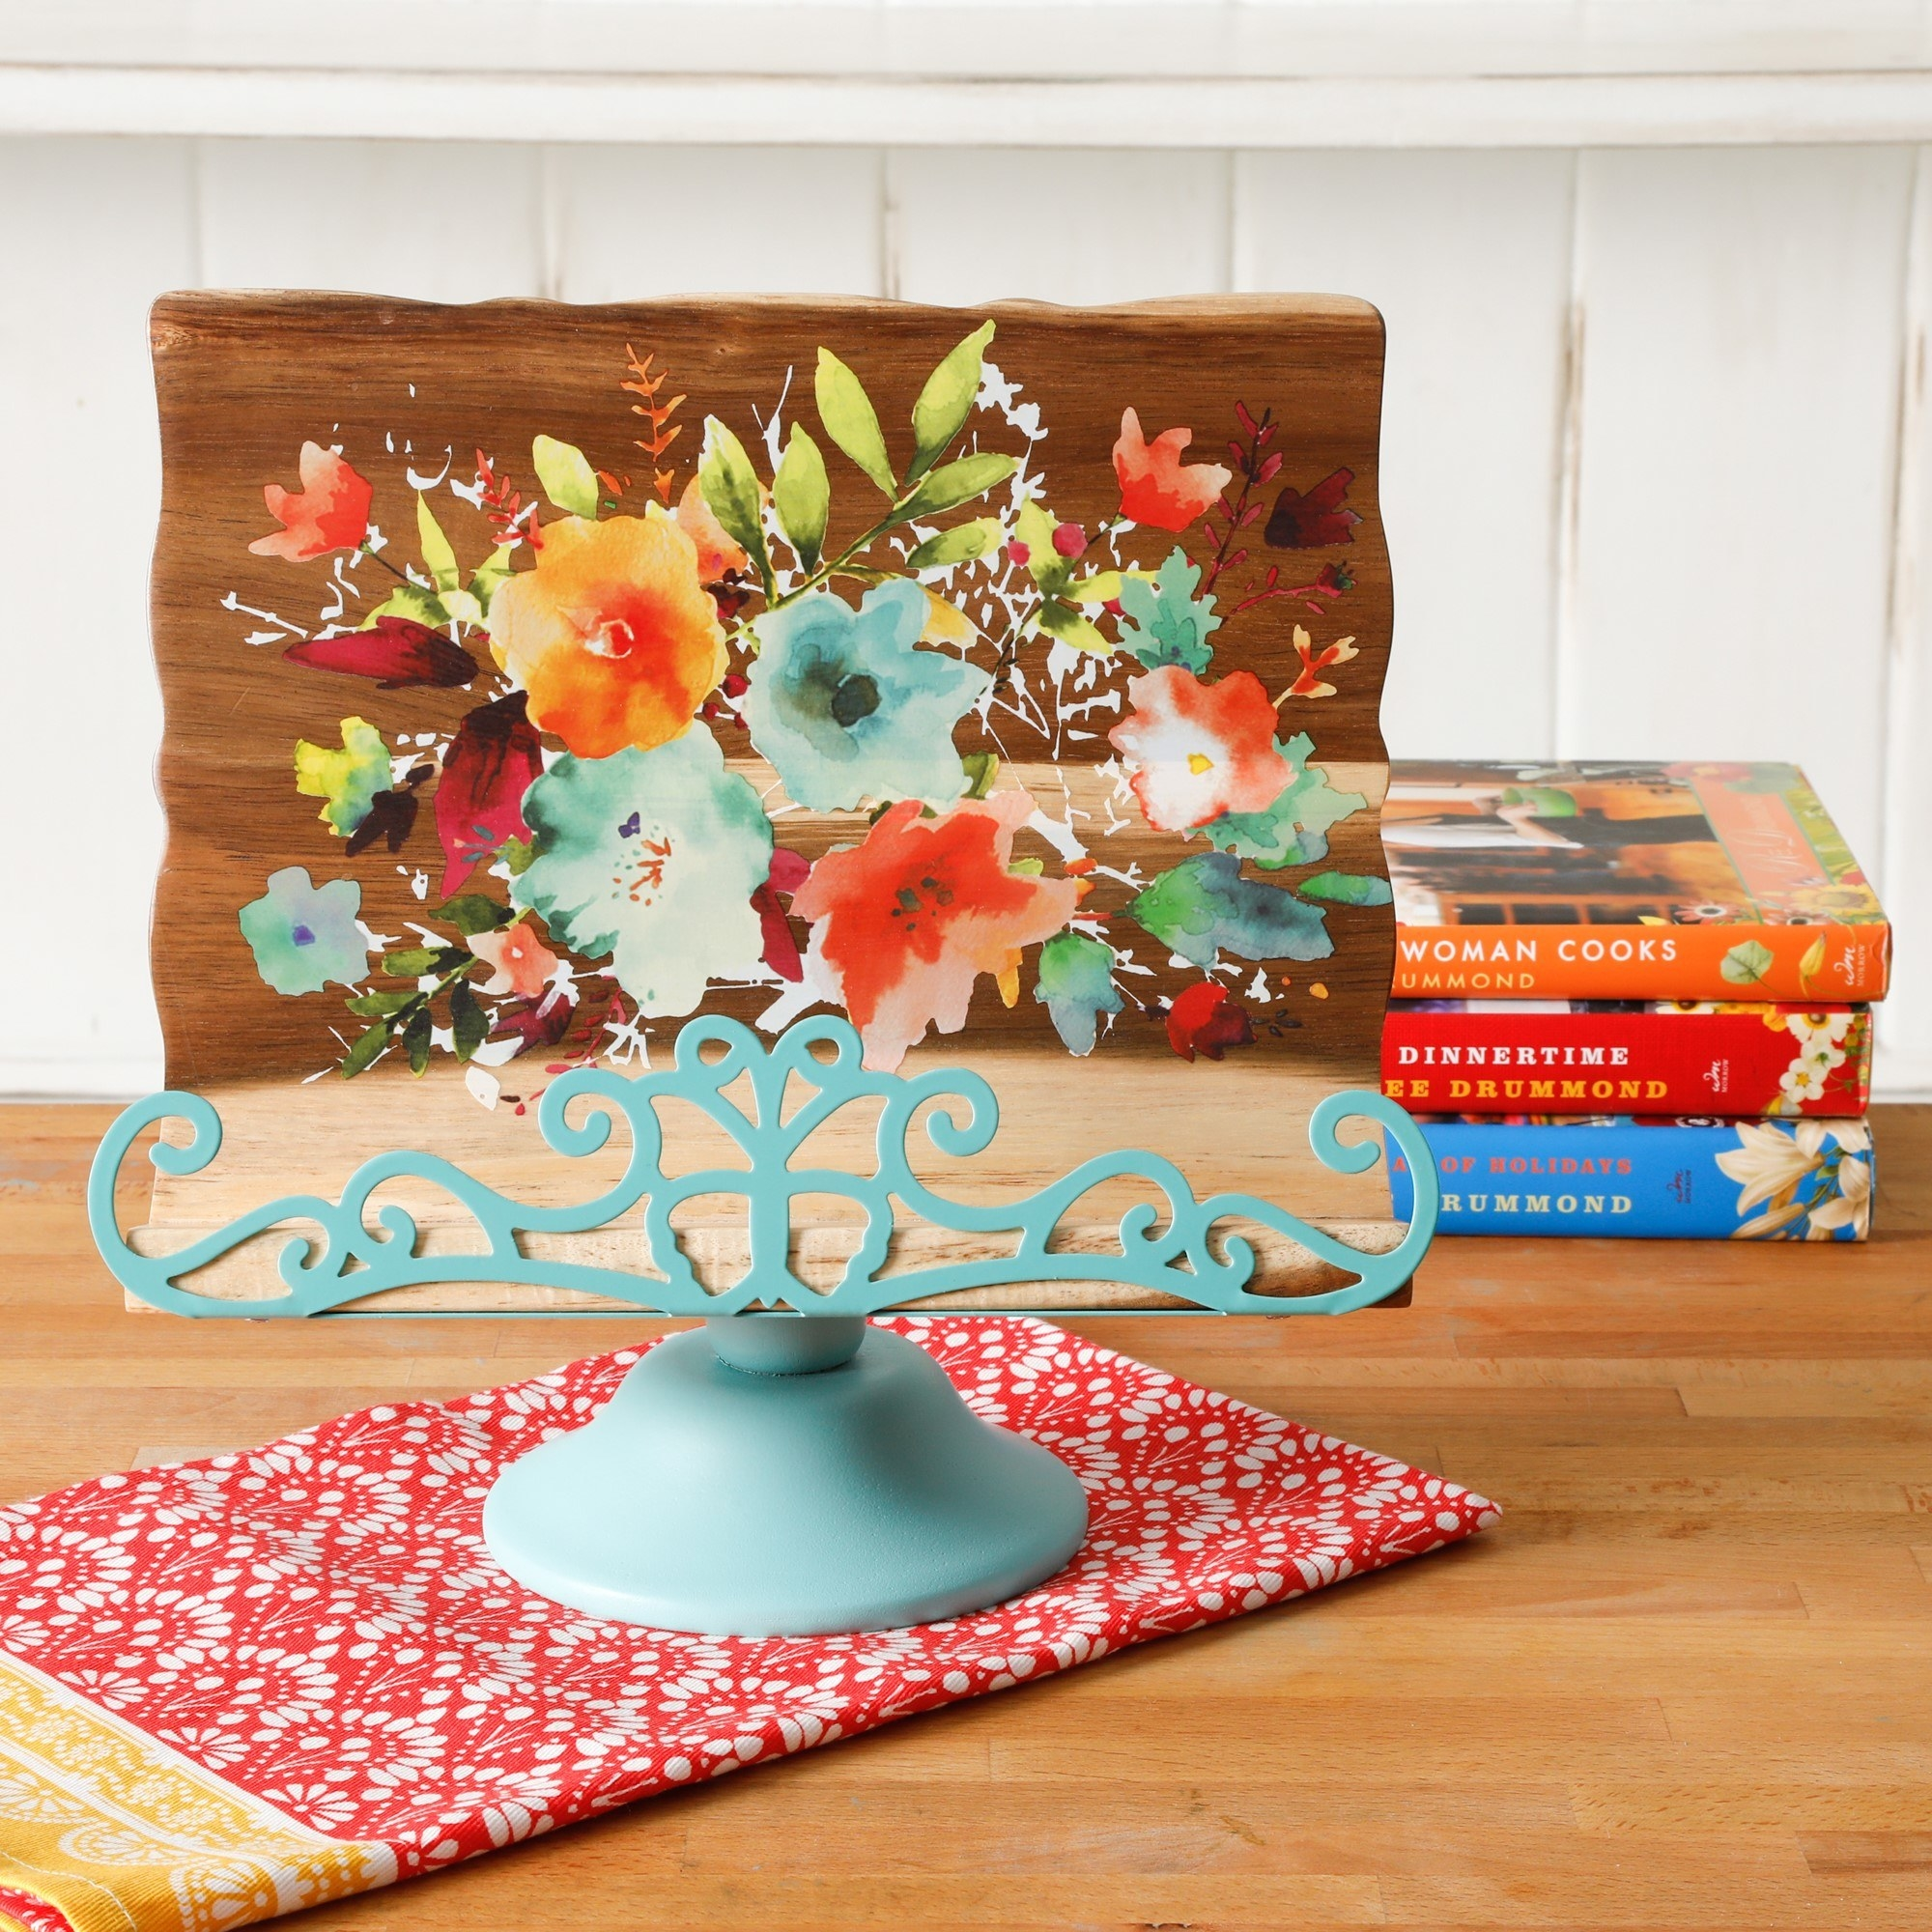 a cookbook holder with a floral print on it sitting on a kitchen counter